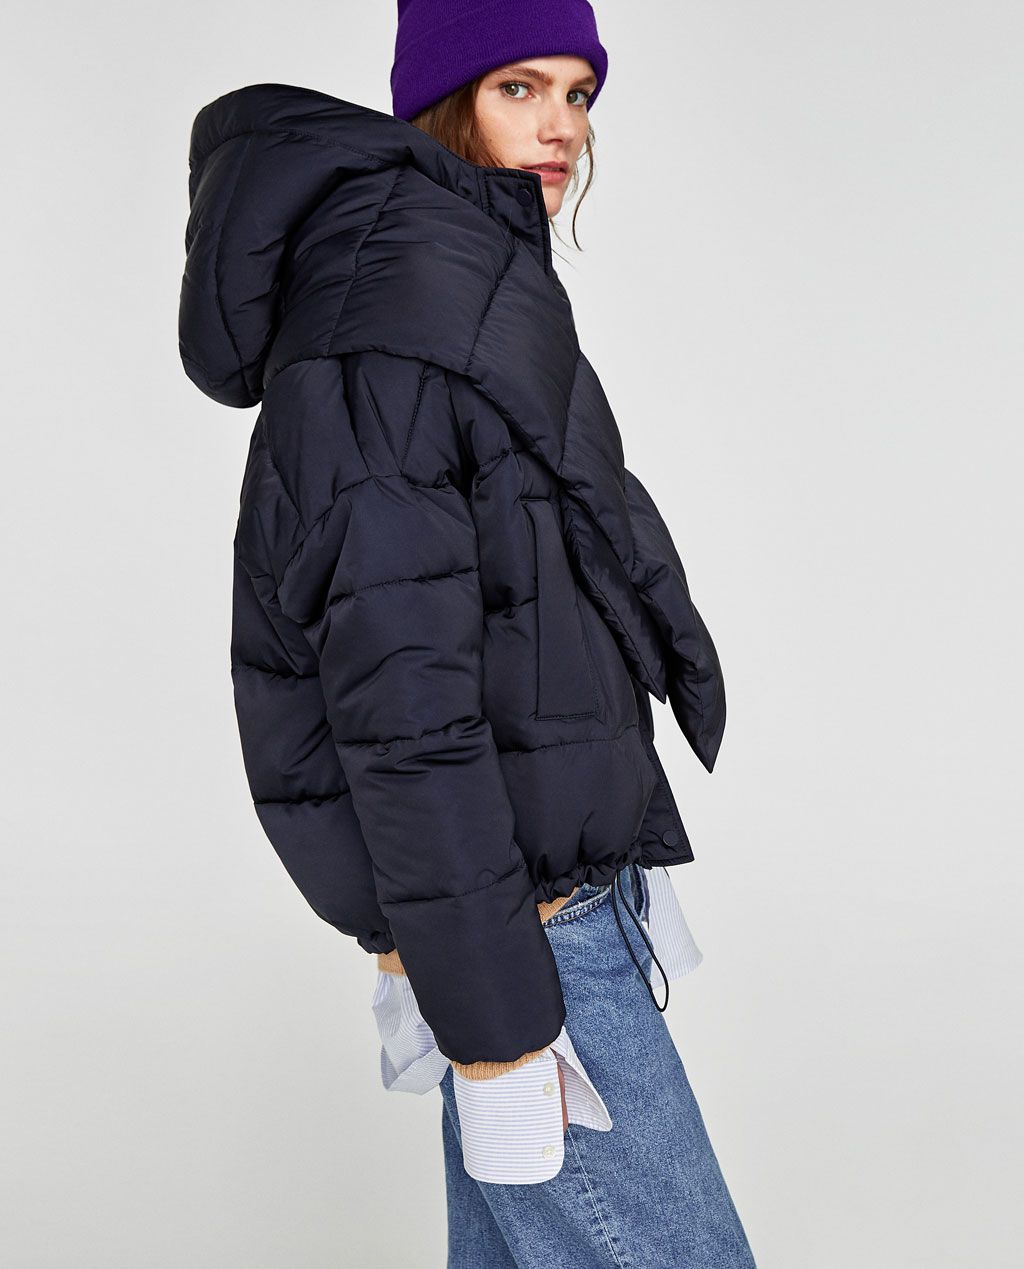 Quilted Jacket With Scarf New In Woman Zara United States Puffer Coat With Hood Down Puffer Coat Quilted Jacket [ 1269 x 1024 Pixel ]